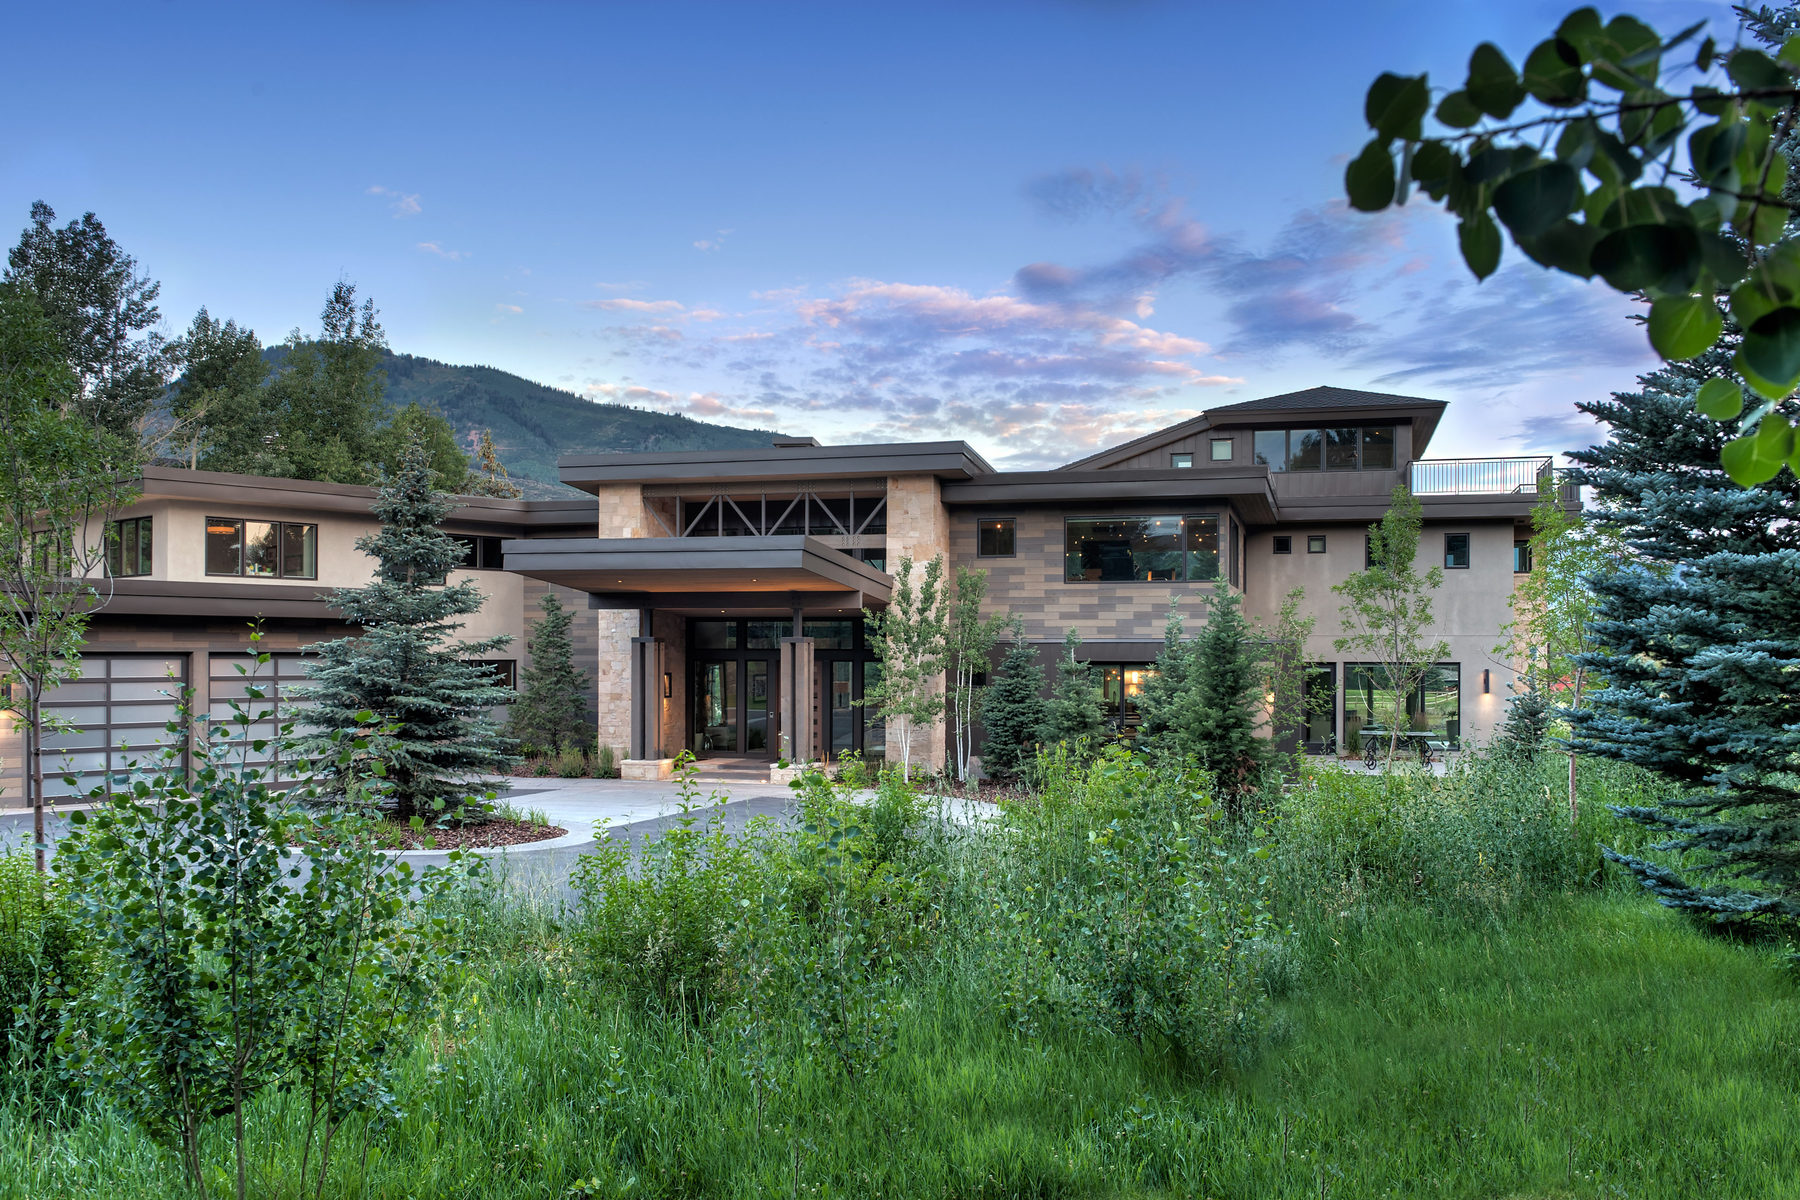 Single Family Home for Sale at Exquisite Contemporary Estate 1334 Lucky John Dr Park City, Utah, 84060 United States